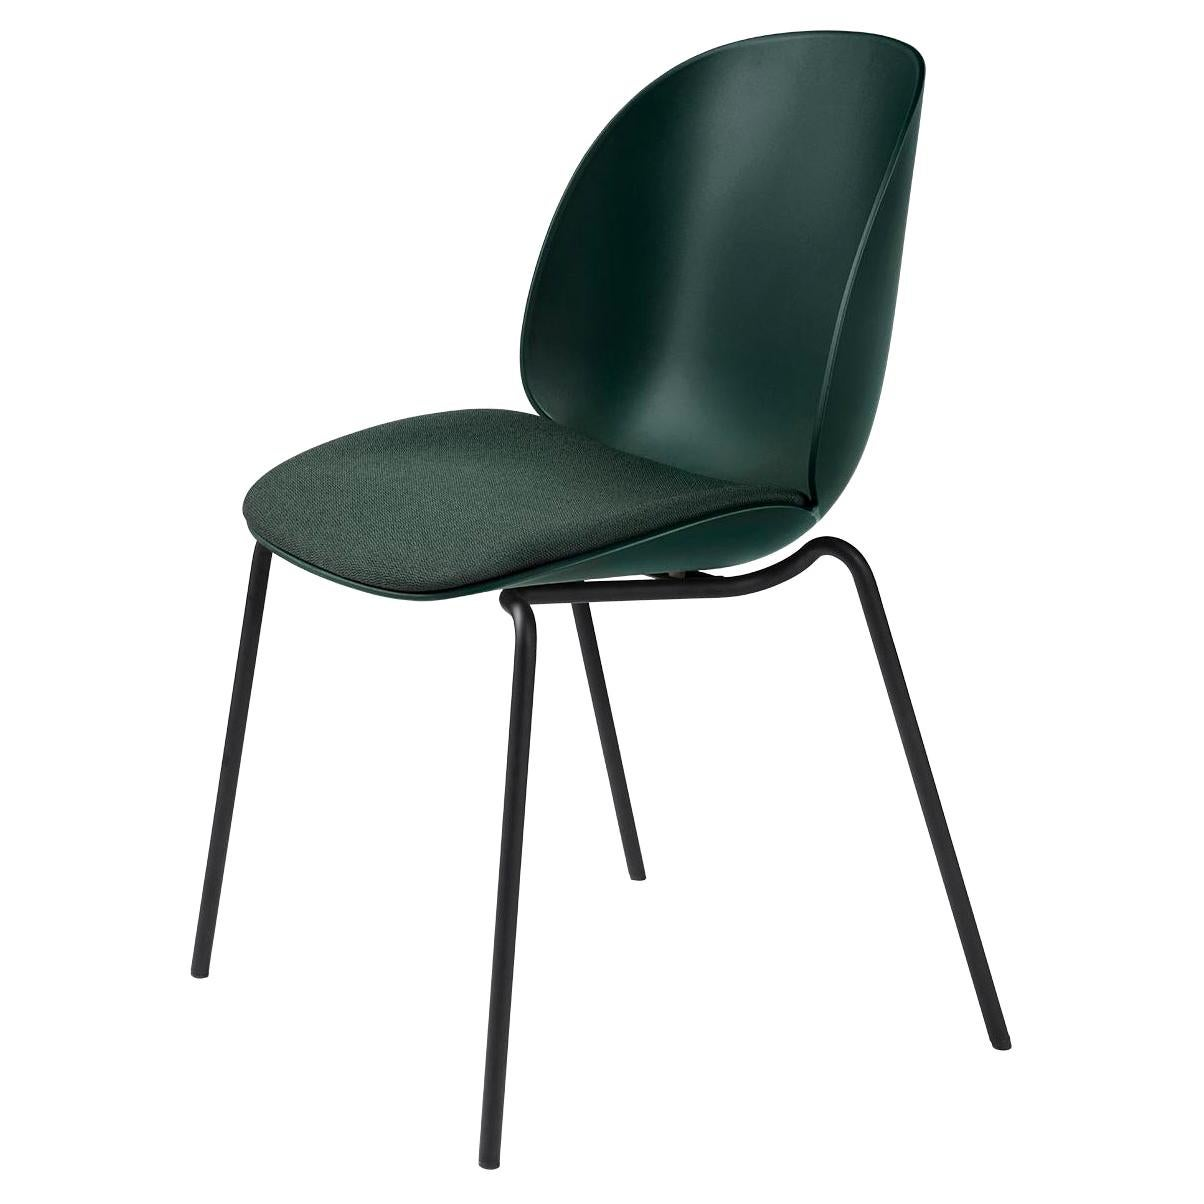 Beetle Dining Chair, Fully Upholstered, Stackable Base, Chrome